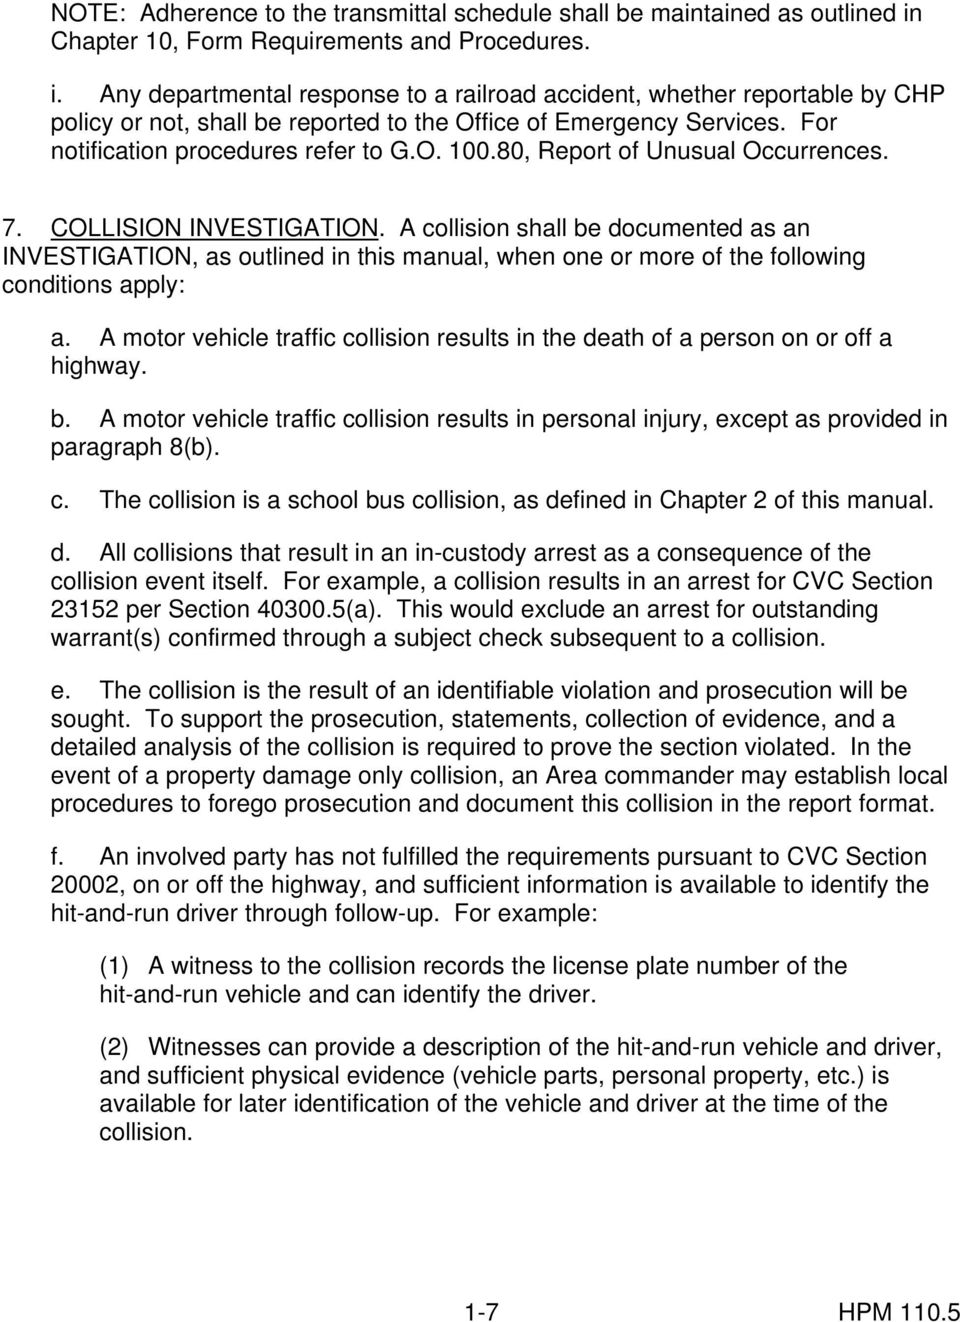 For notification procedures refer to G.O. 100.80, Report of Unusual Occurrences. 7. COLLISION INVESTIGATION.